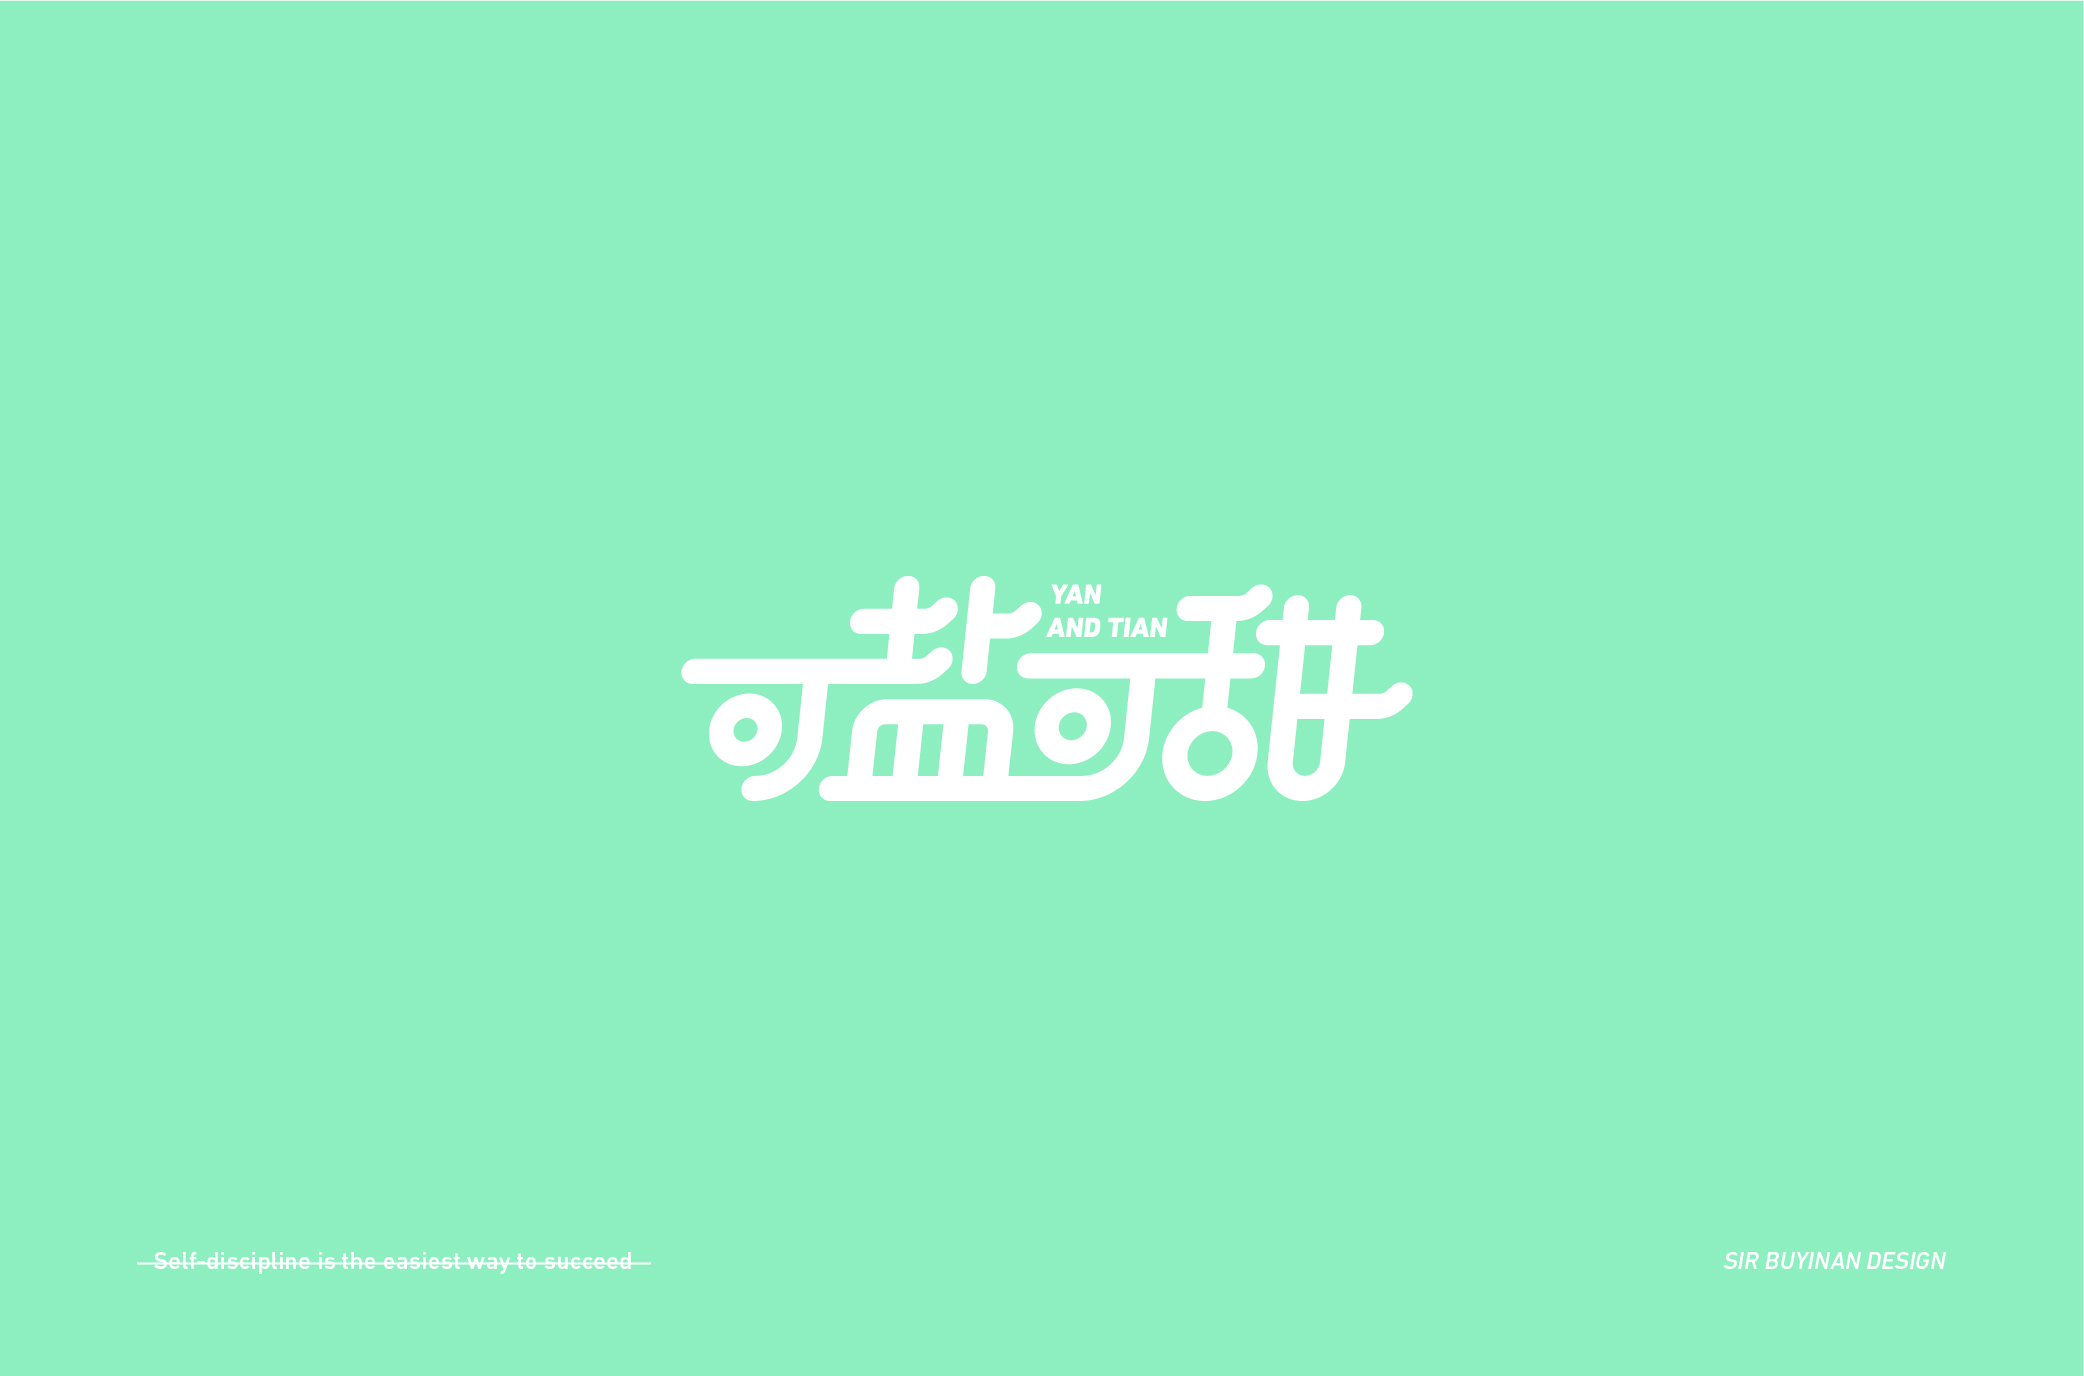 Font design with different styles and backgrounds with the theme of salt and sweetness